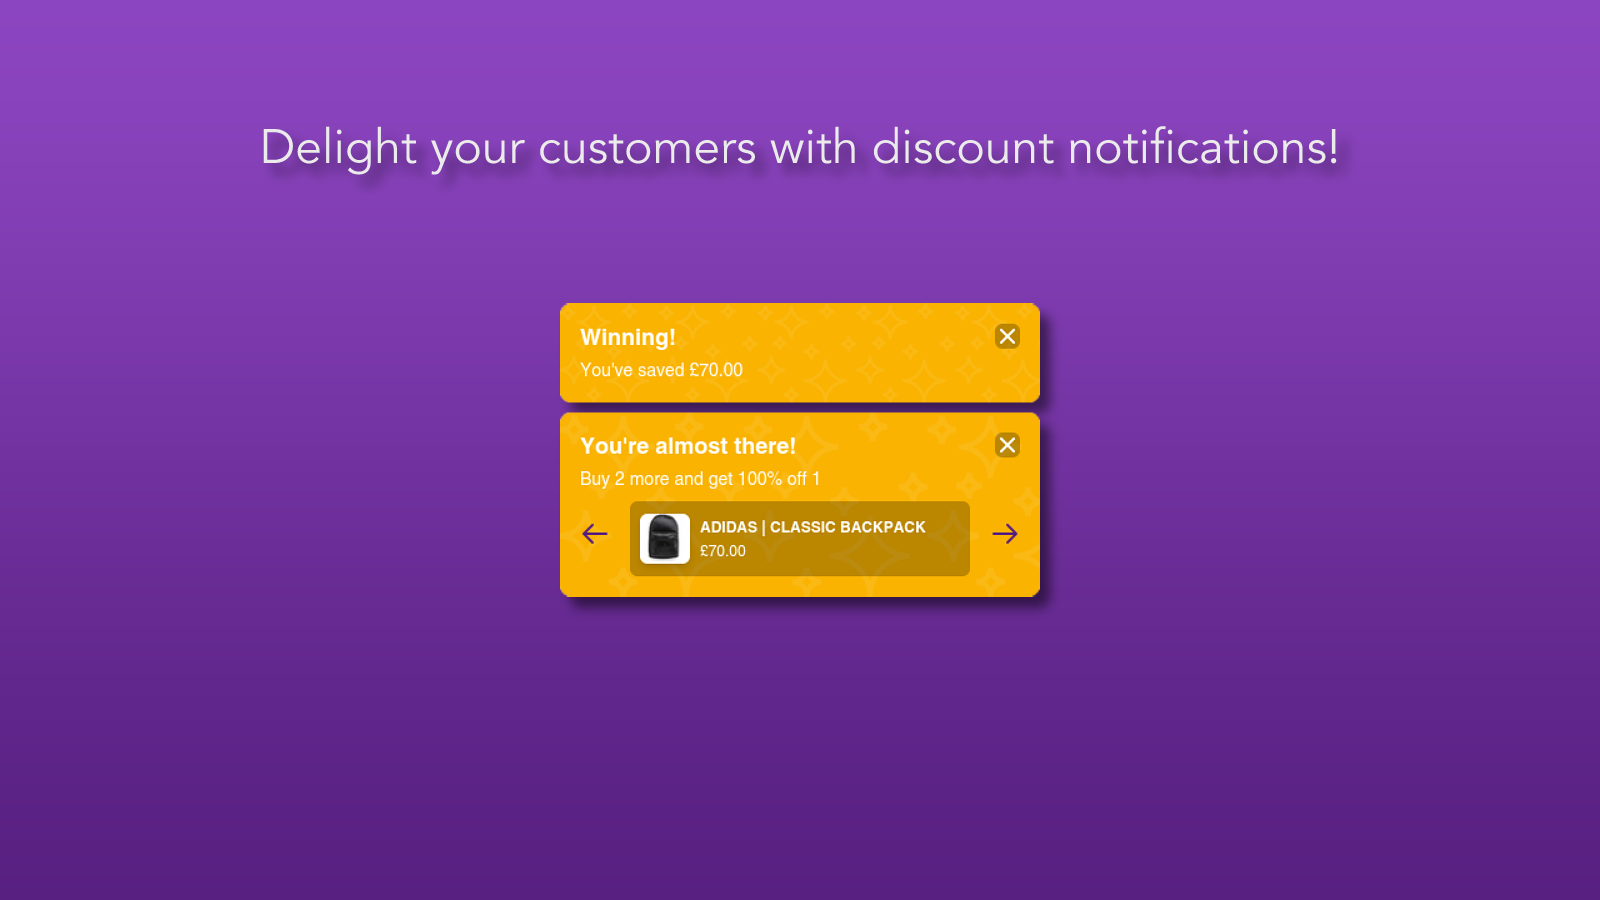 Delight your customers with notifications